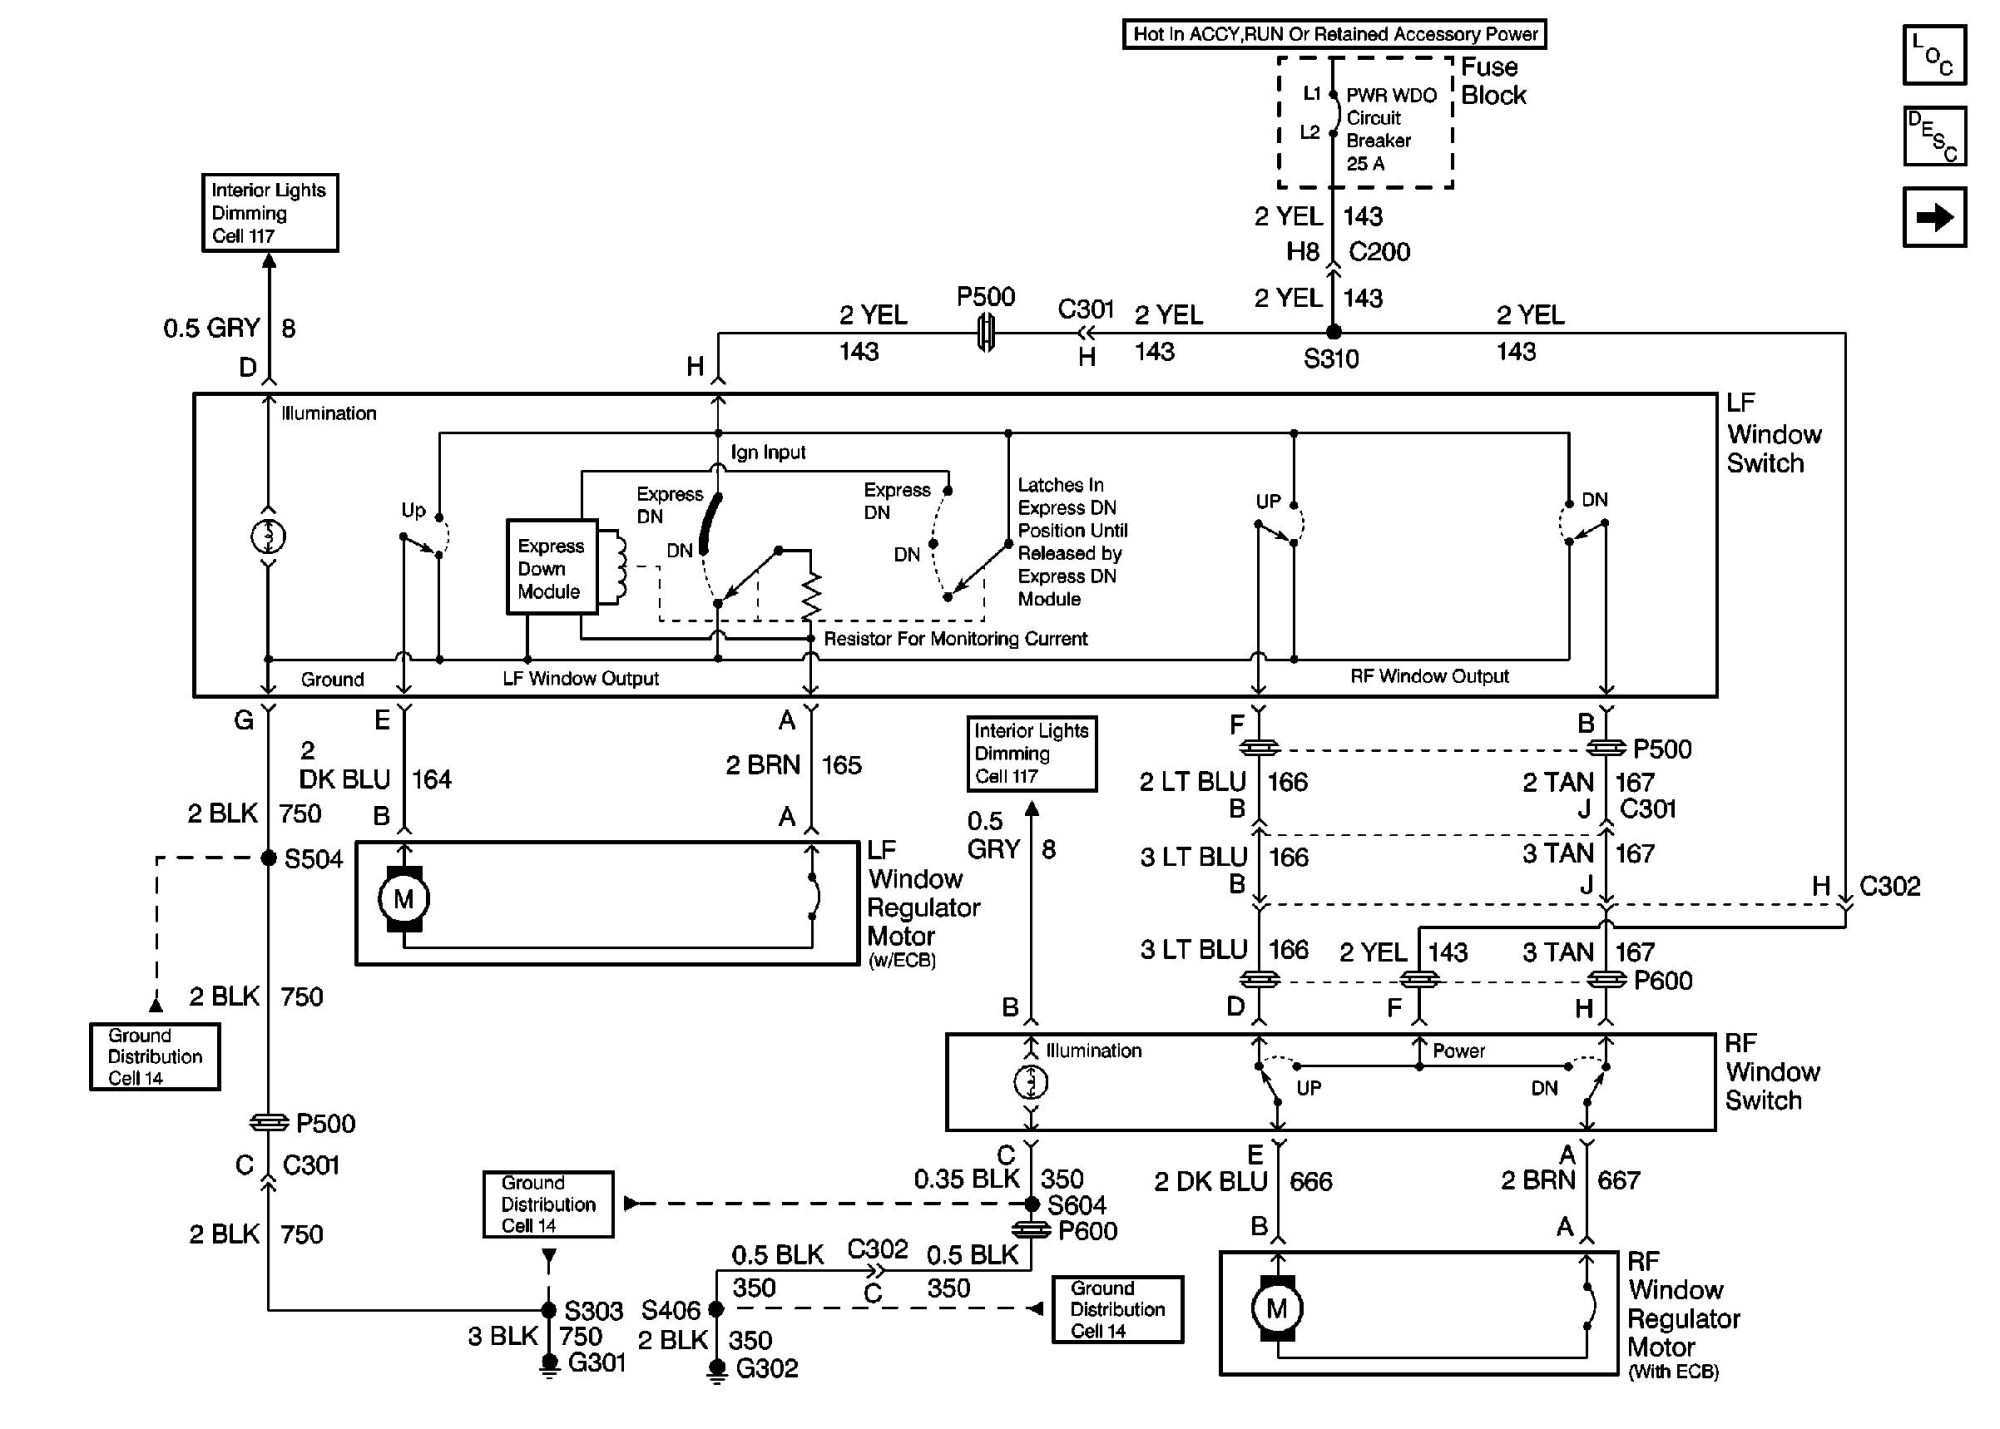 hight resolution of power seats wiring diagram for 2004 mitsubishi endeavor wiring 2004 mitsubishi endeavor stereo  [ 2000 x 1429 Pixel ]